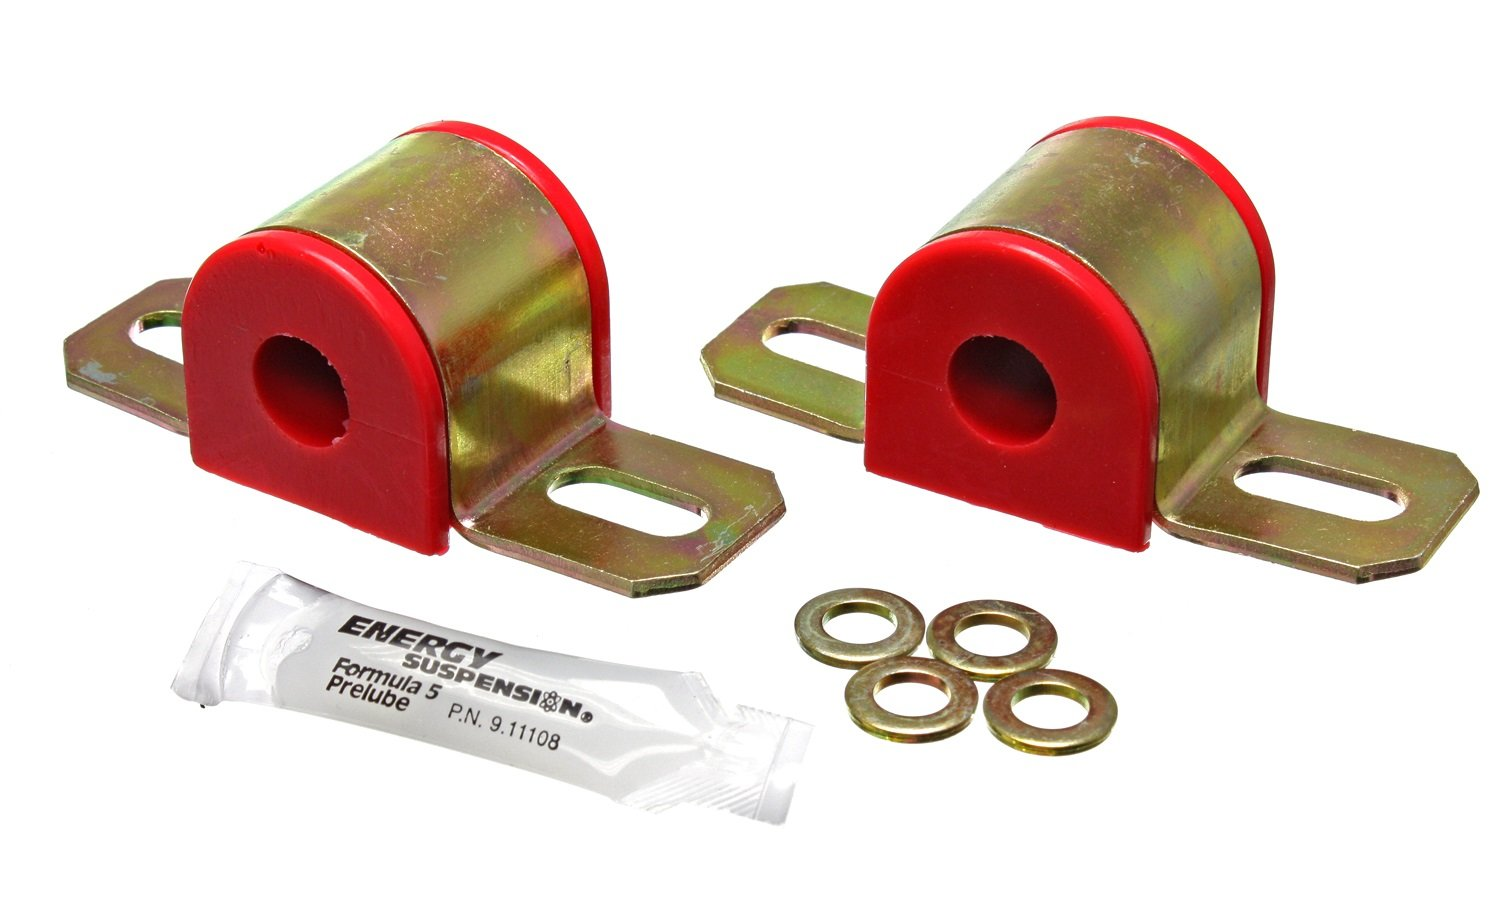 Energy Suspension 9.5108R 7/8' Stabilizer Bushing